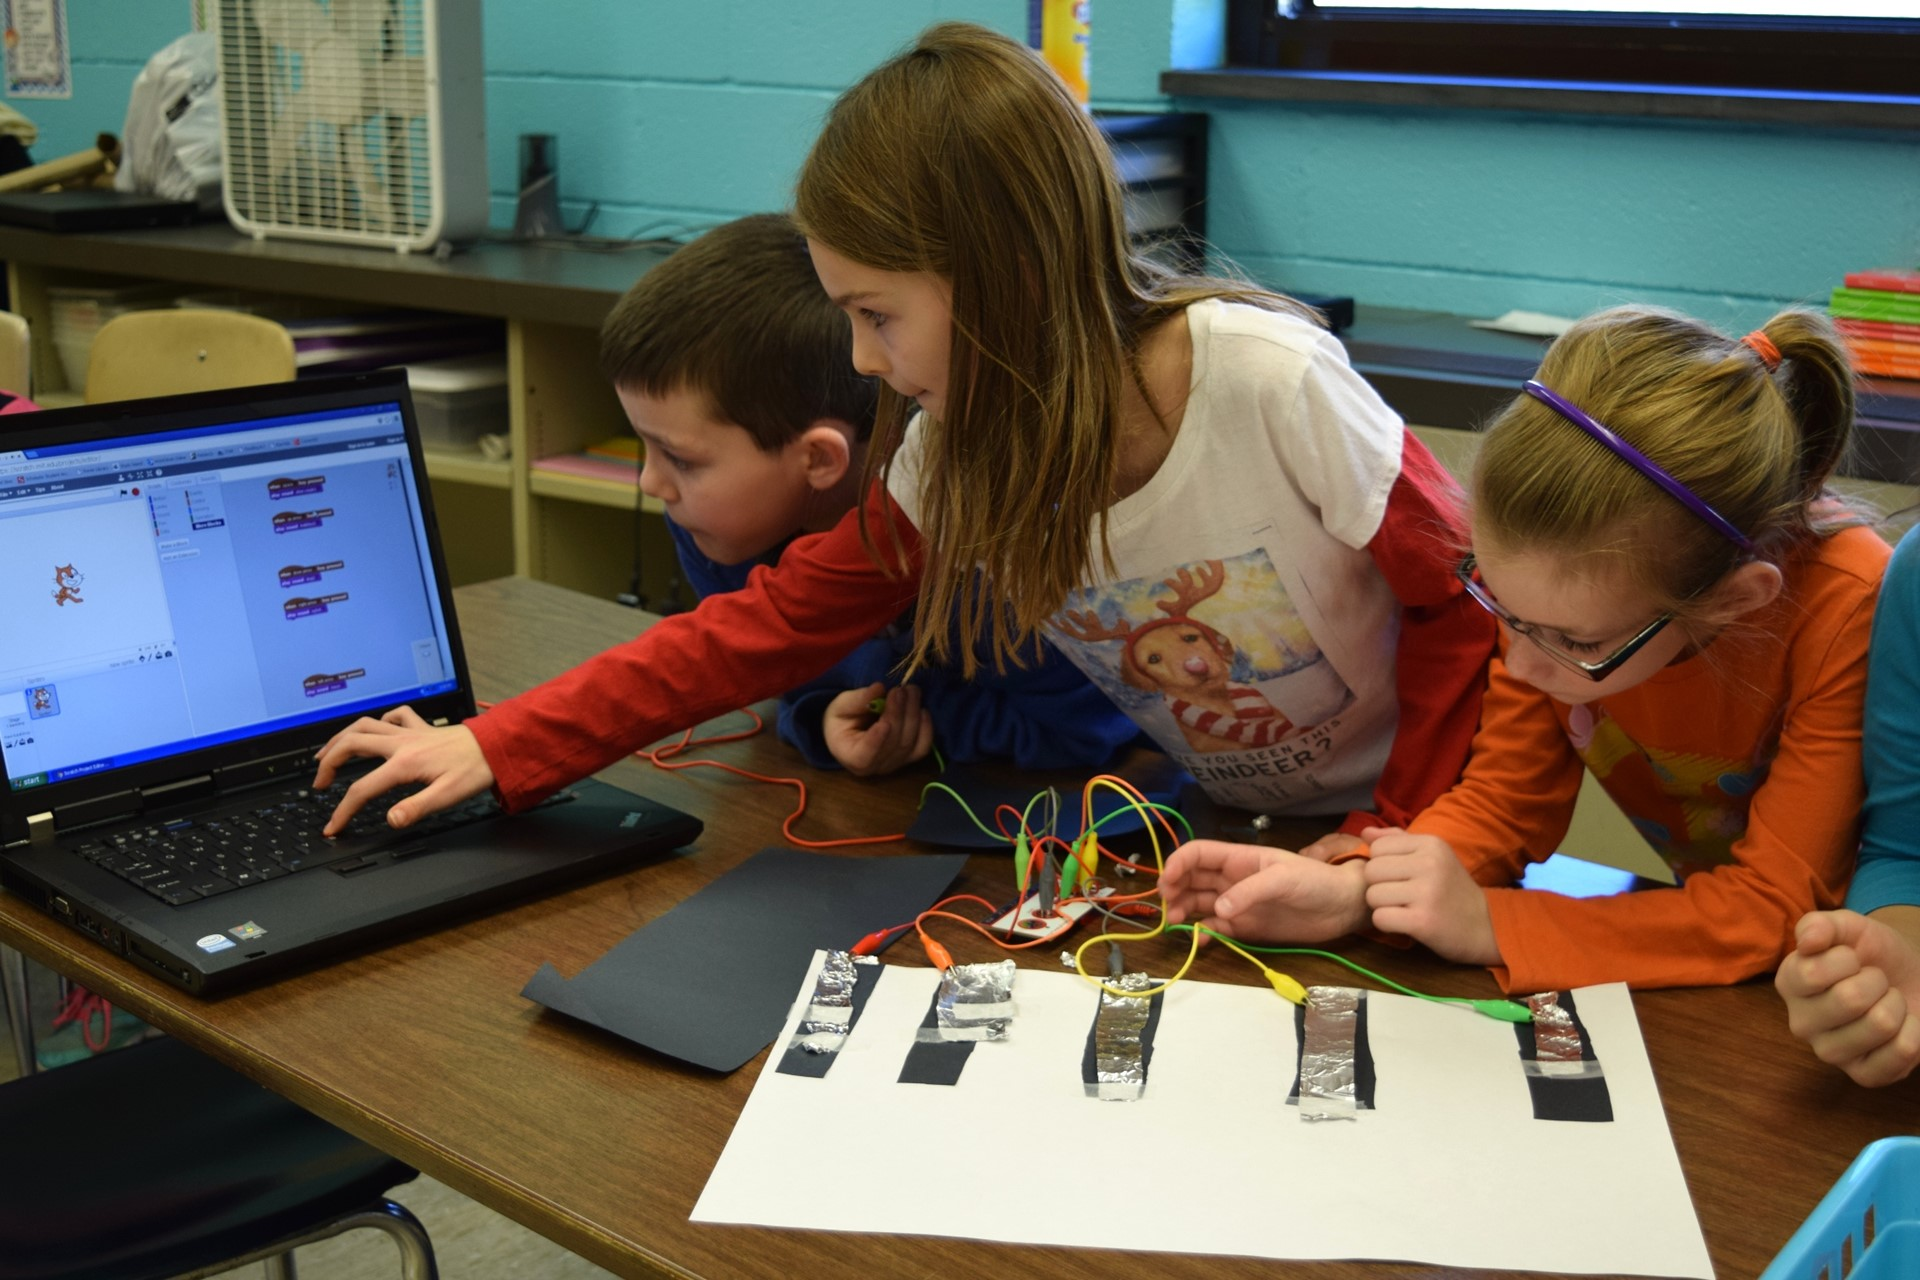 Students use MaKey MaKey to turn everyday objects into musical instruments.